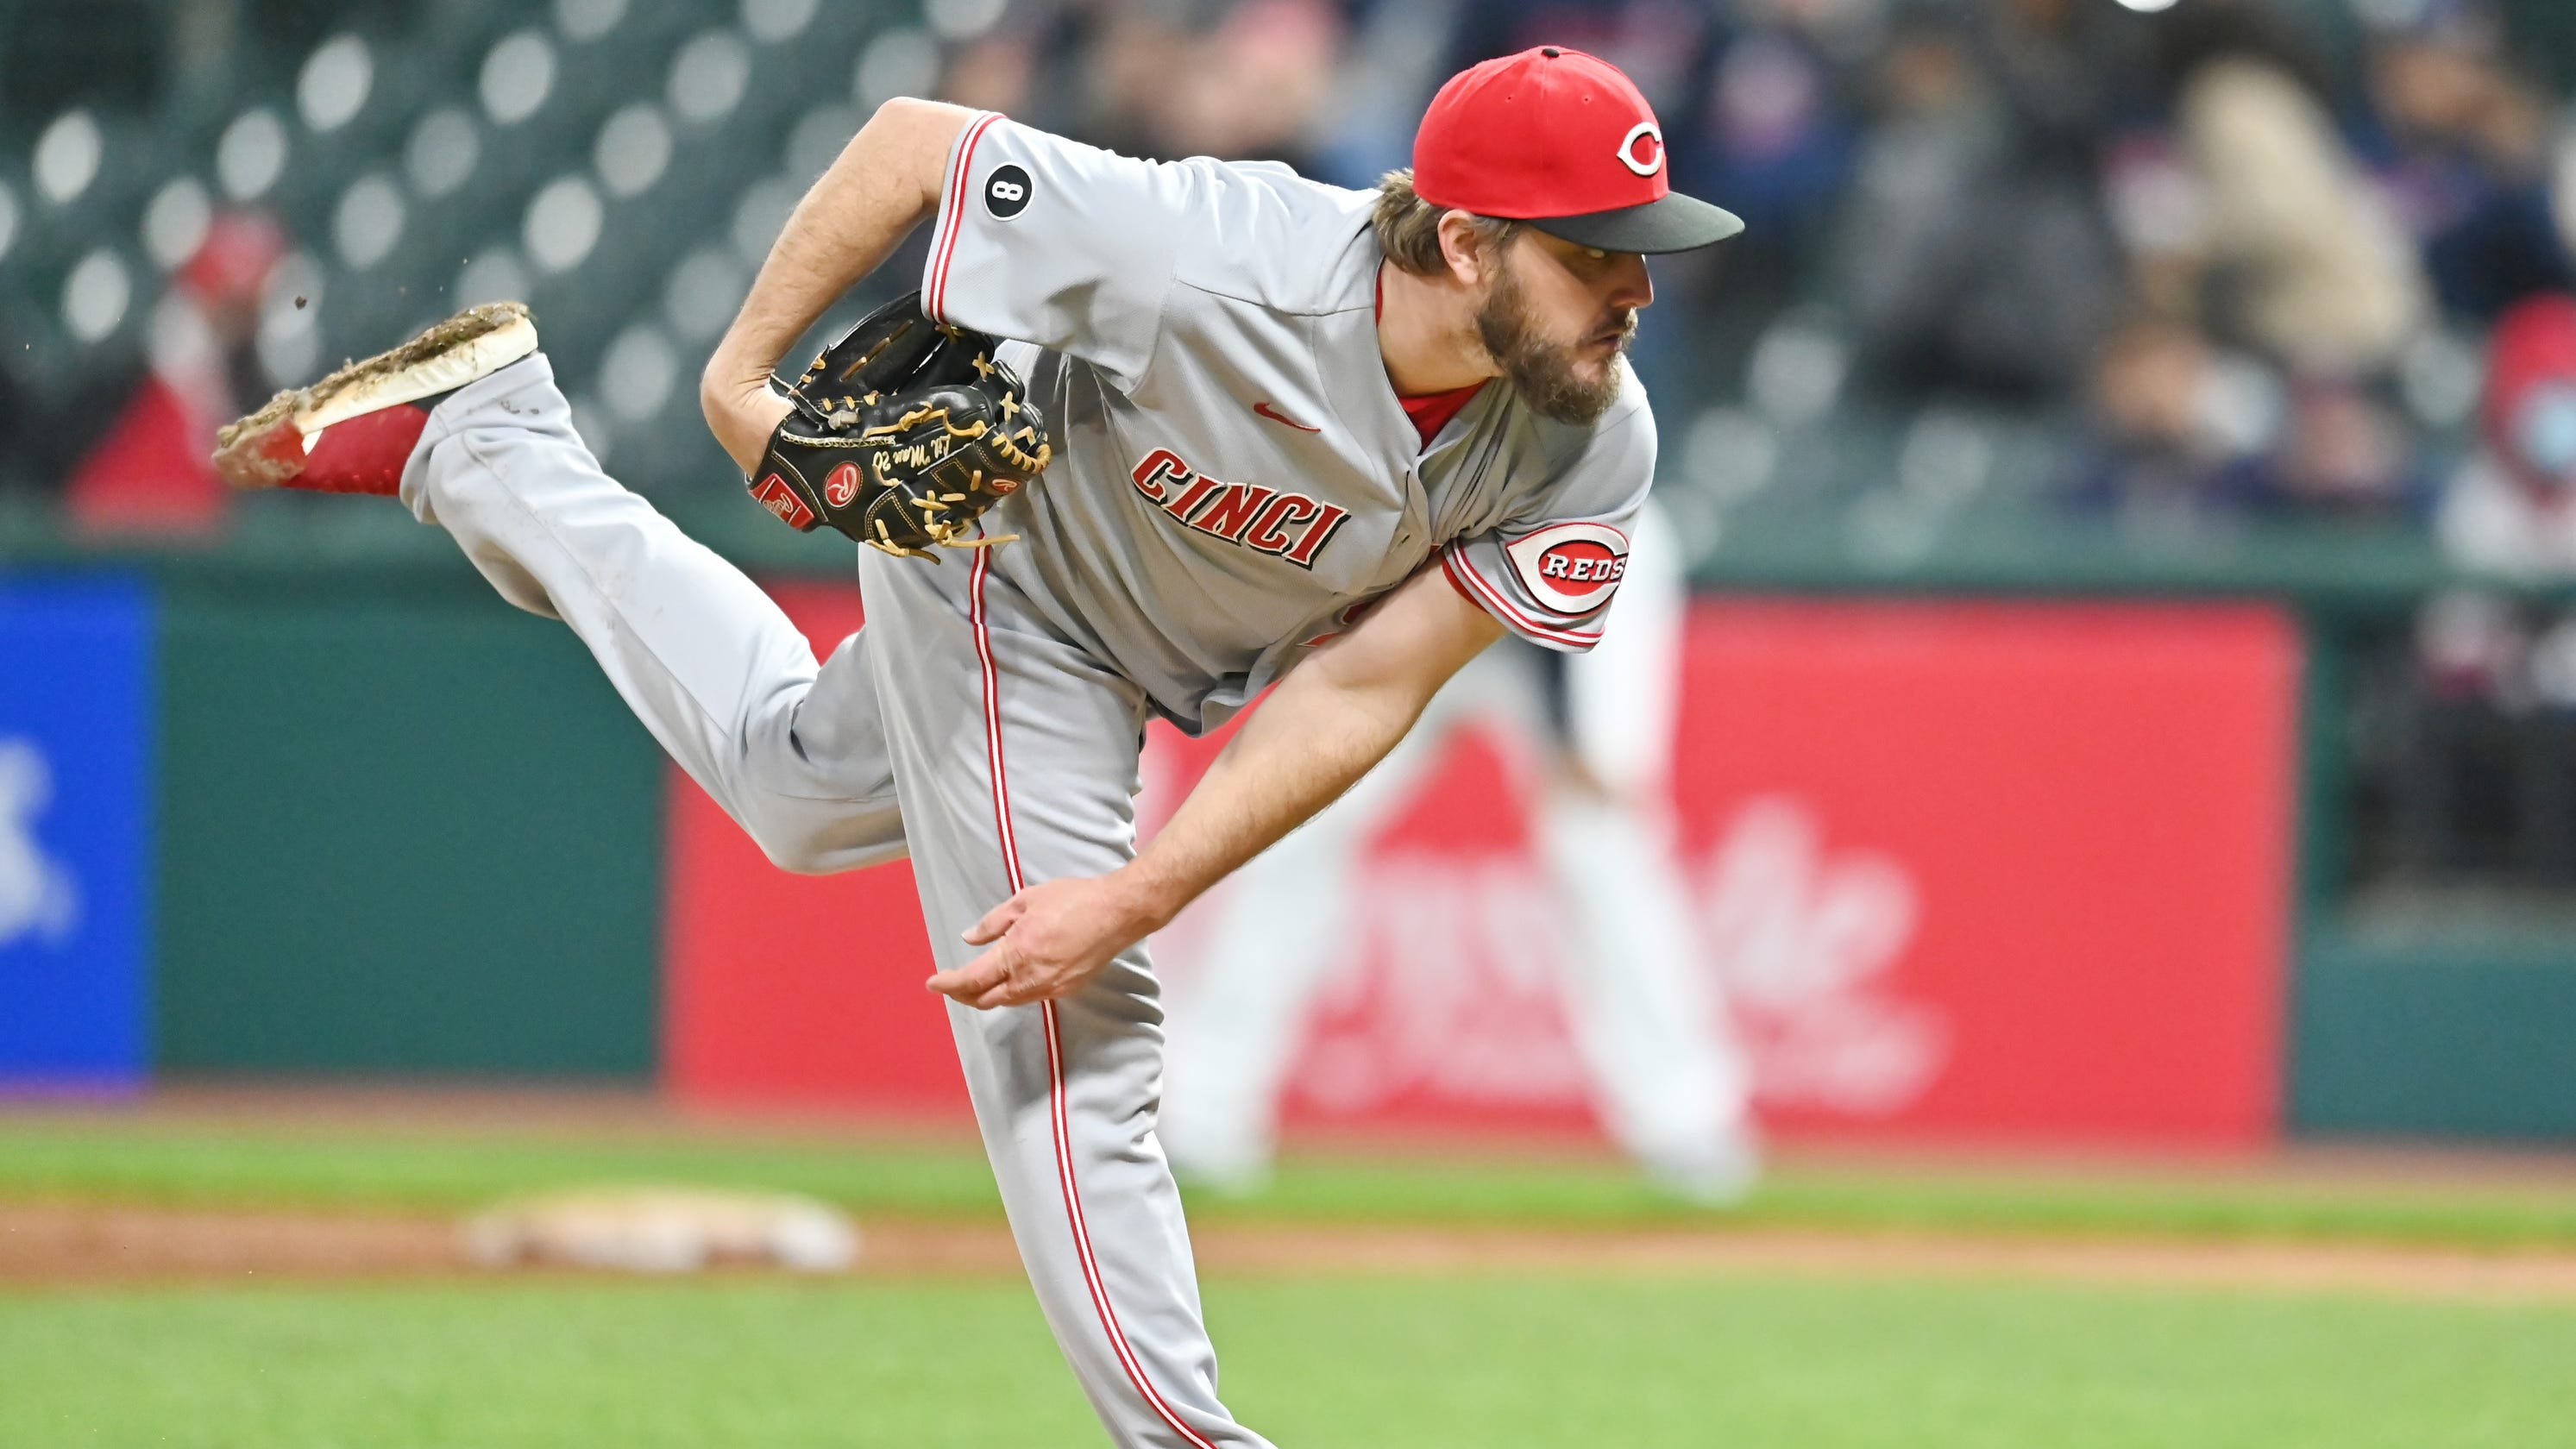 Reds' Wade Miley must make Incredible Hulk tattoo permanent after no-hitter, teammate says